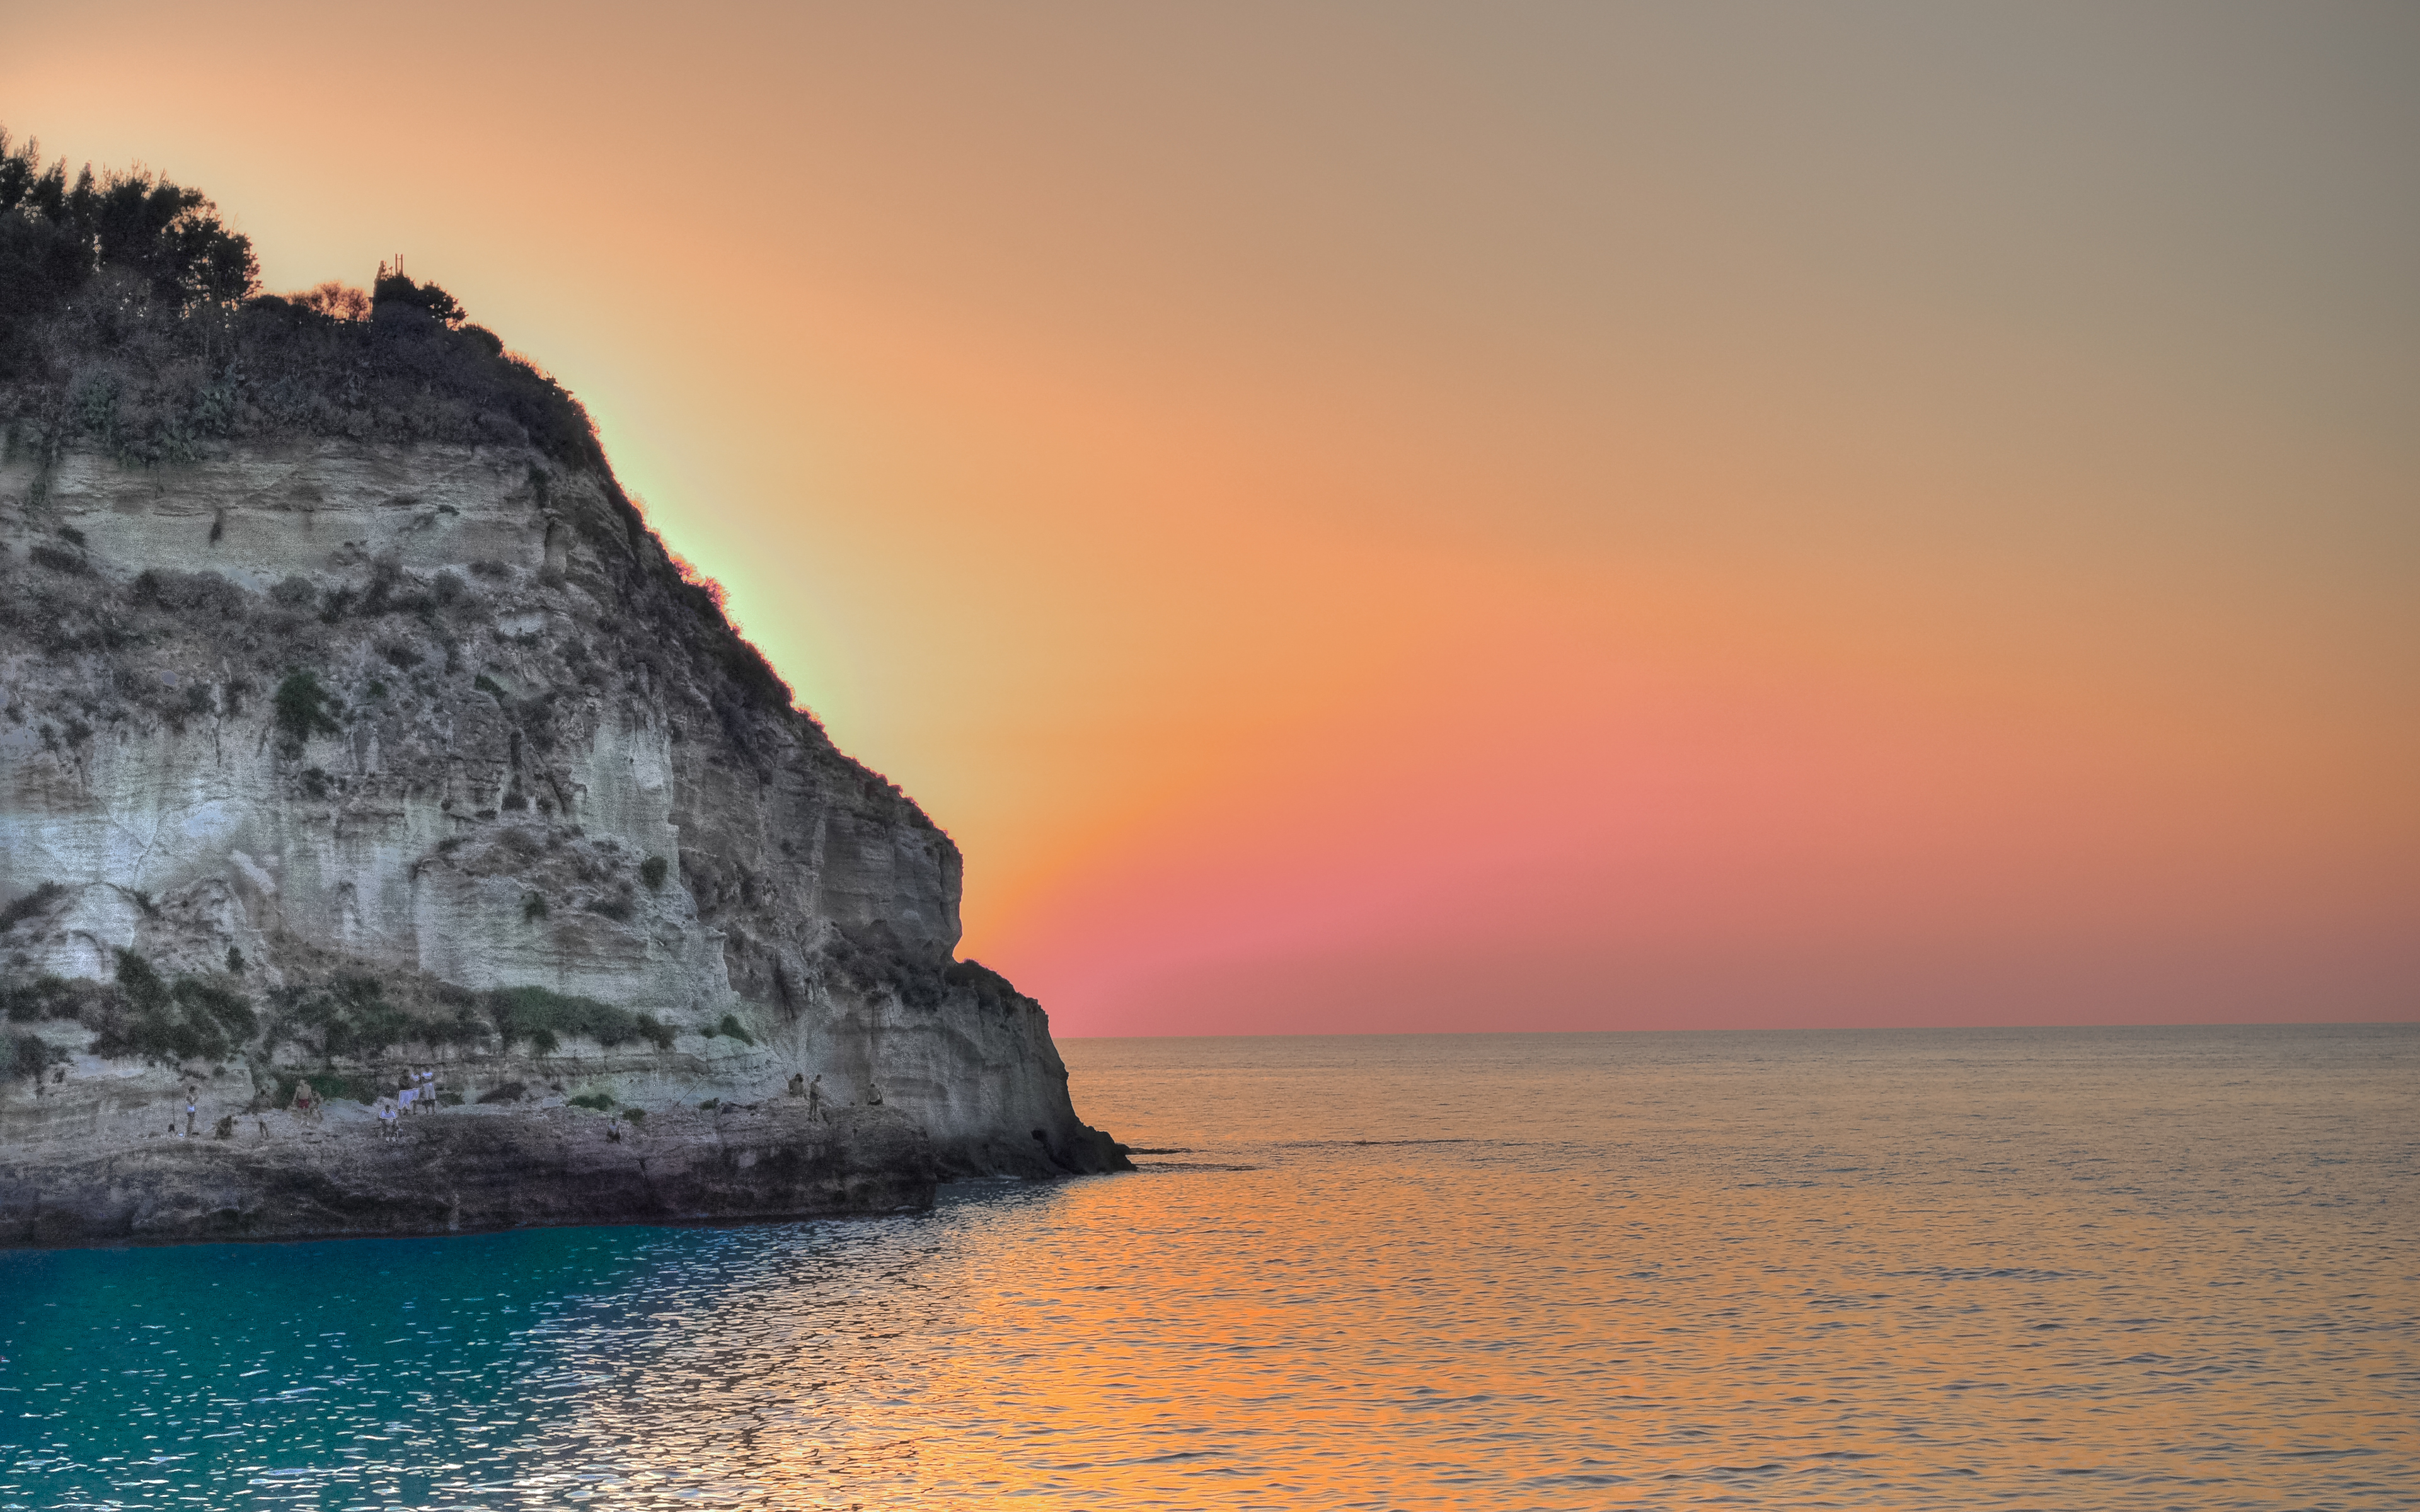 Best 41 Calabria Wallpaper on HipWallpaper Calabria Italy 3840x2400